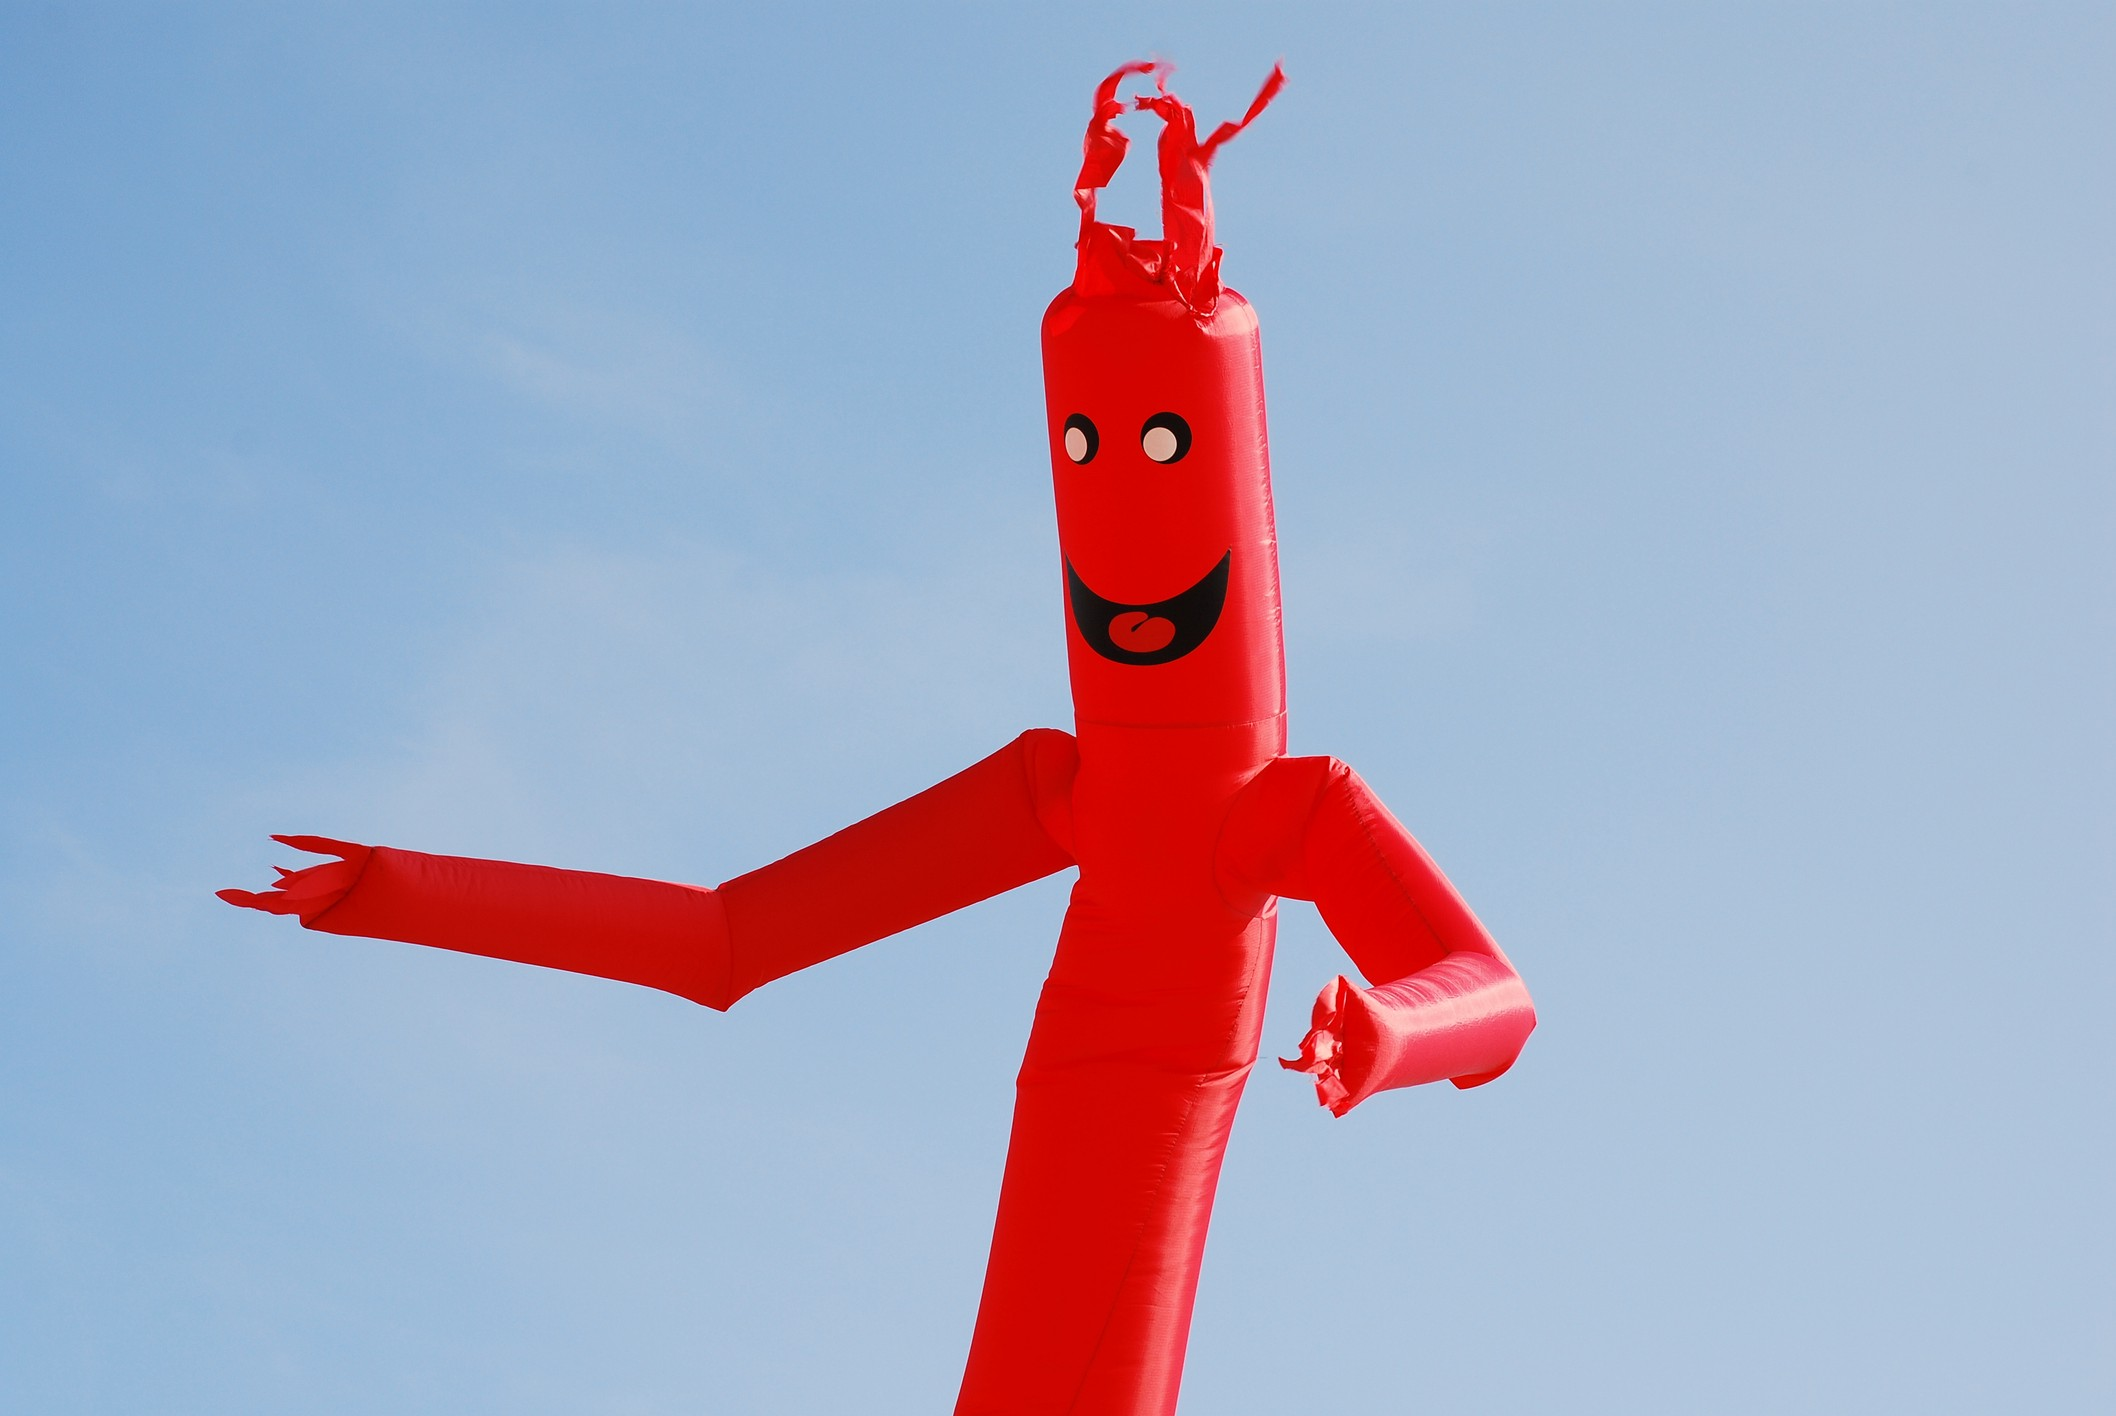 A photo of a red inflatable tube man against a clear blue sky.